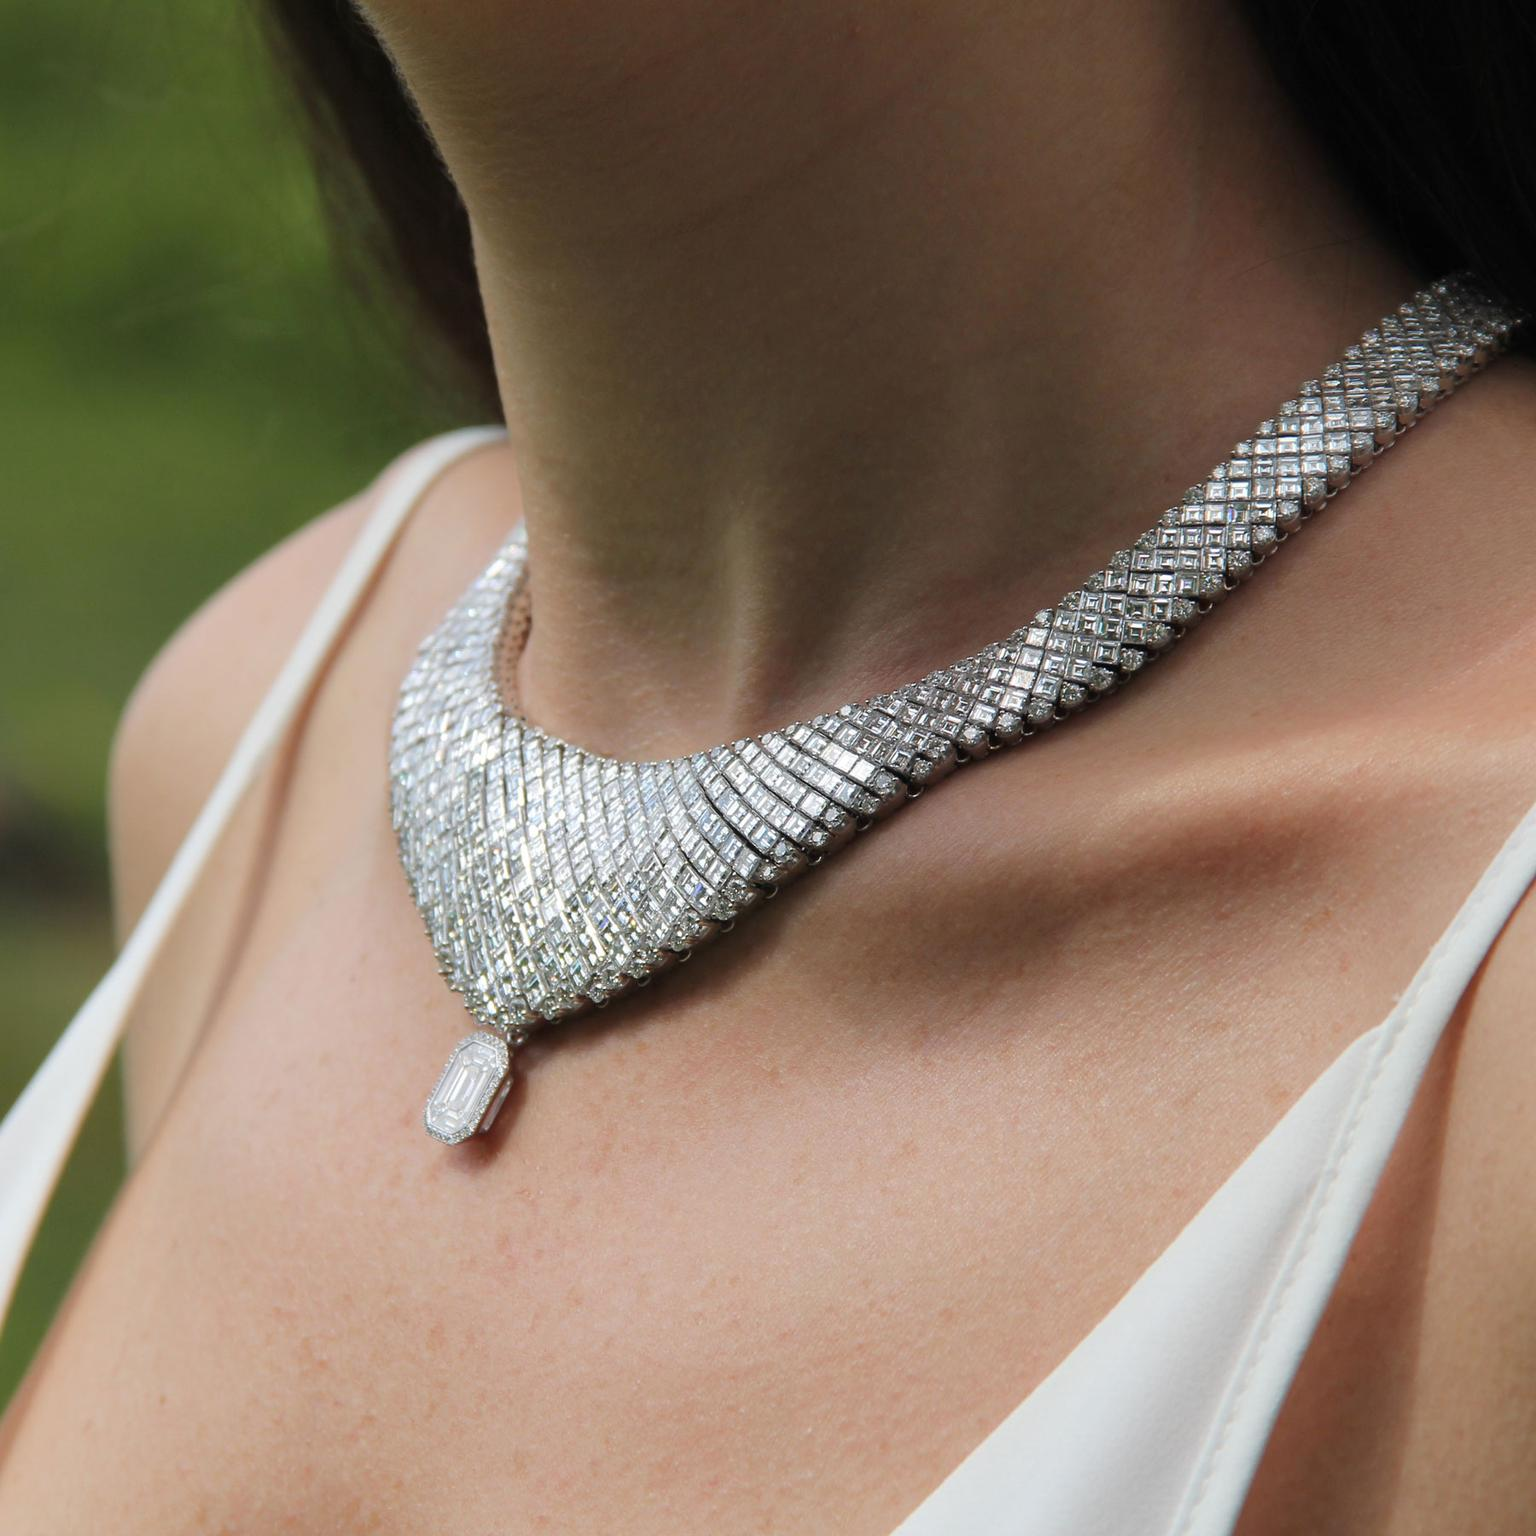 Stenzhorn Ovidio high jewellery necklace